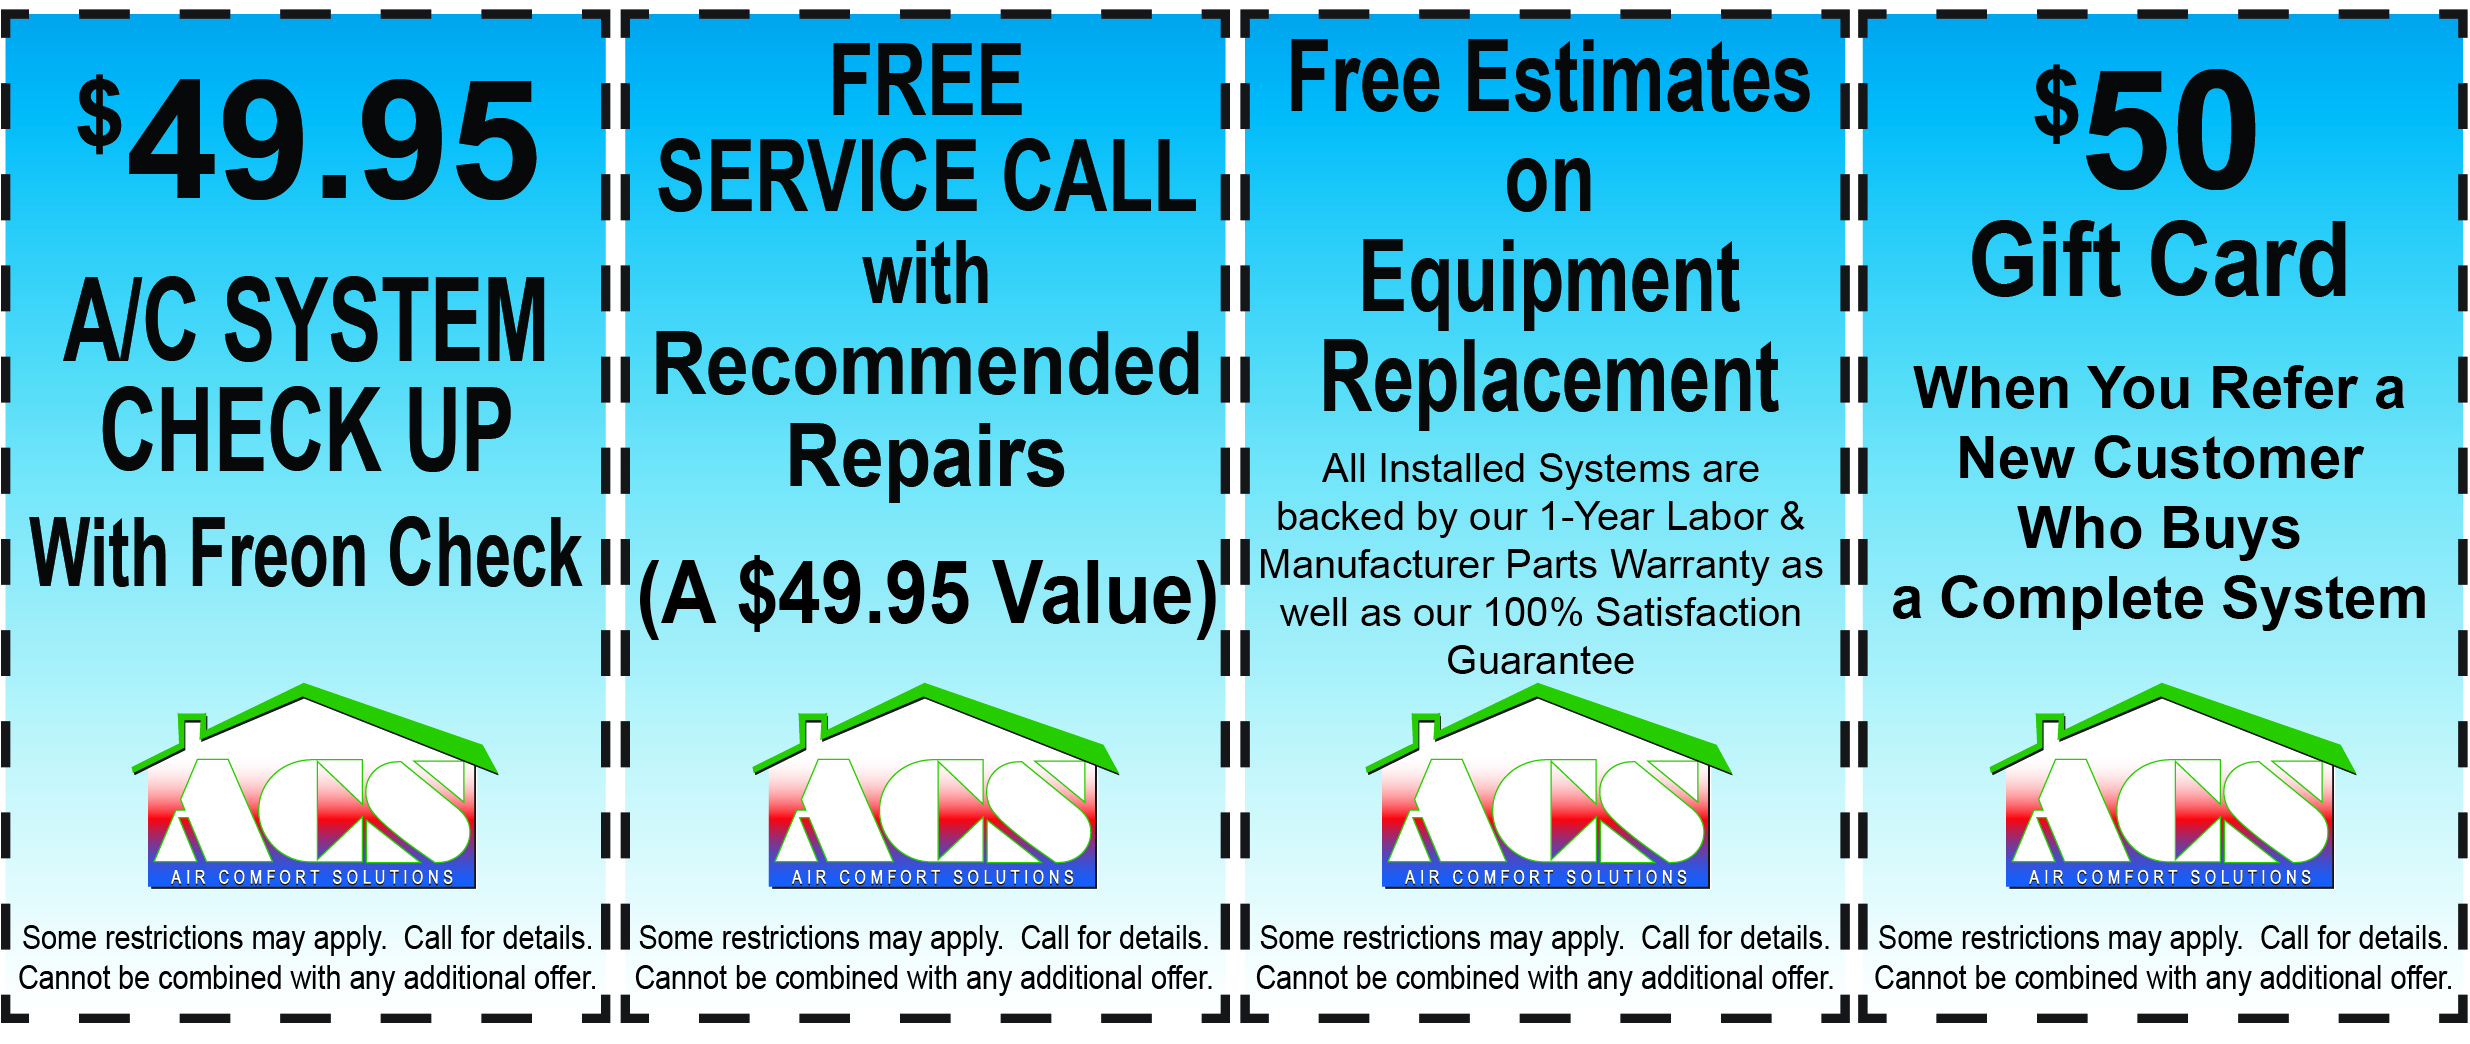 Air Conditioning Repair Specials